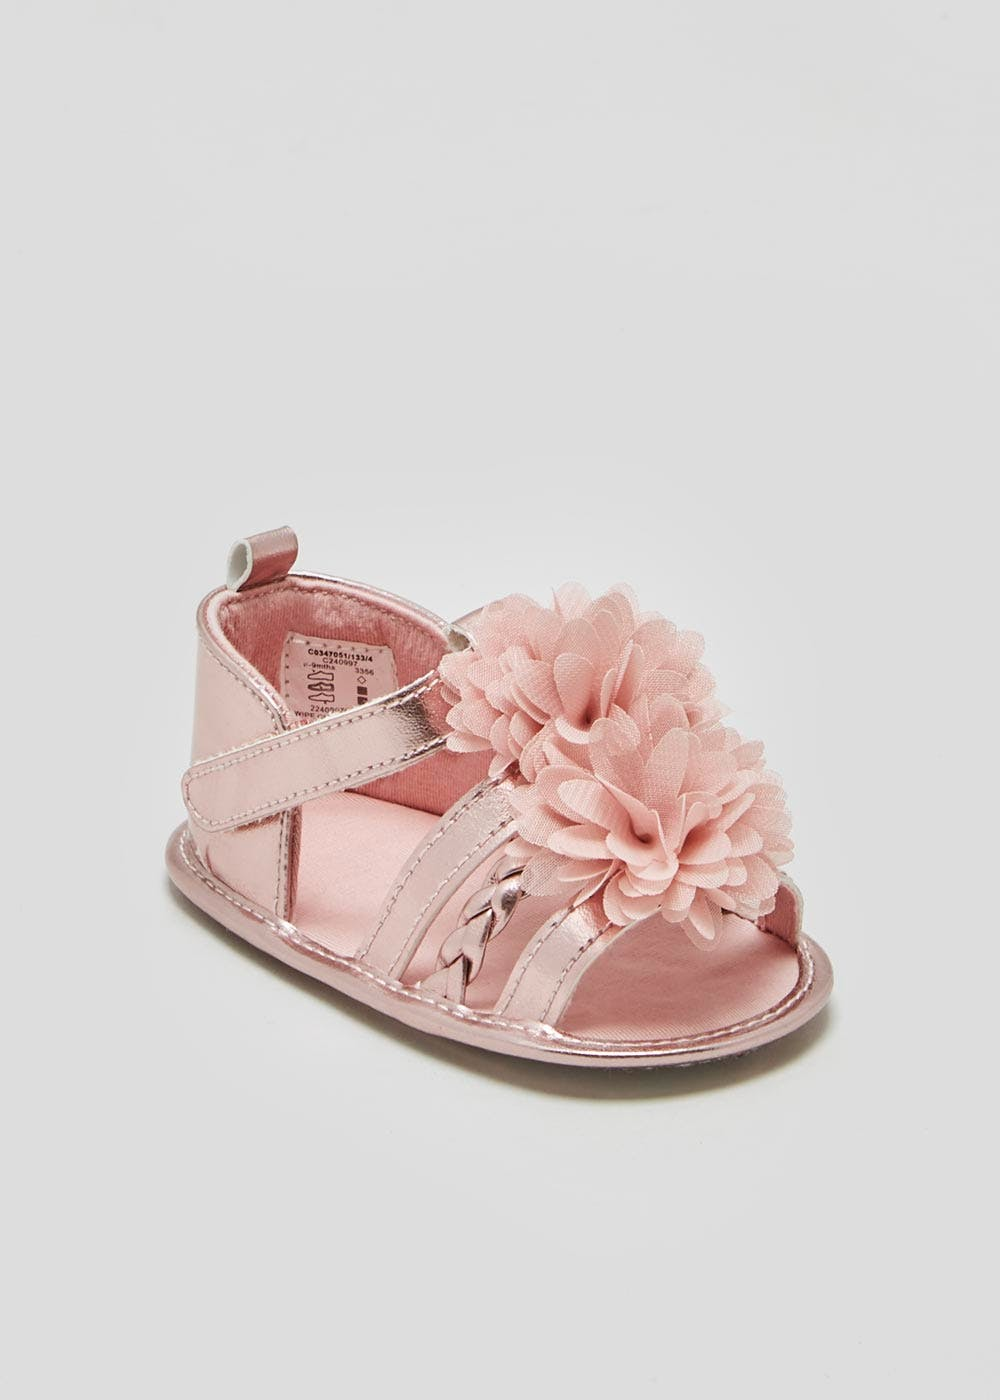 Girls Soft Sole Occasion Baby Sandals